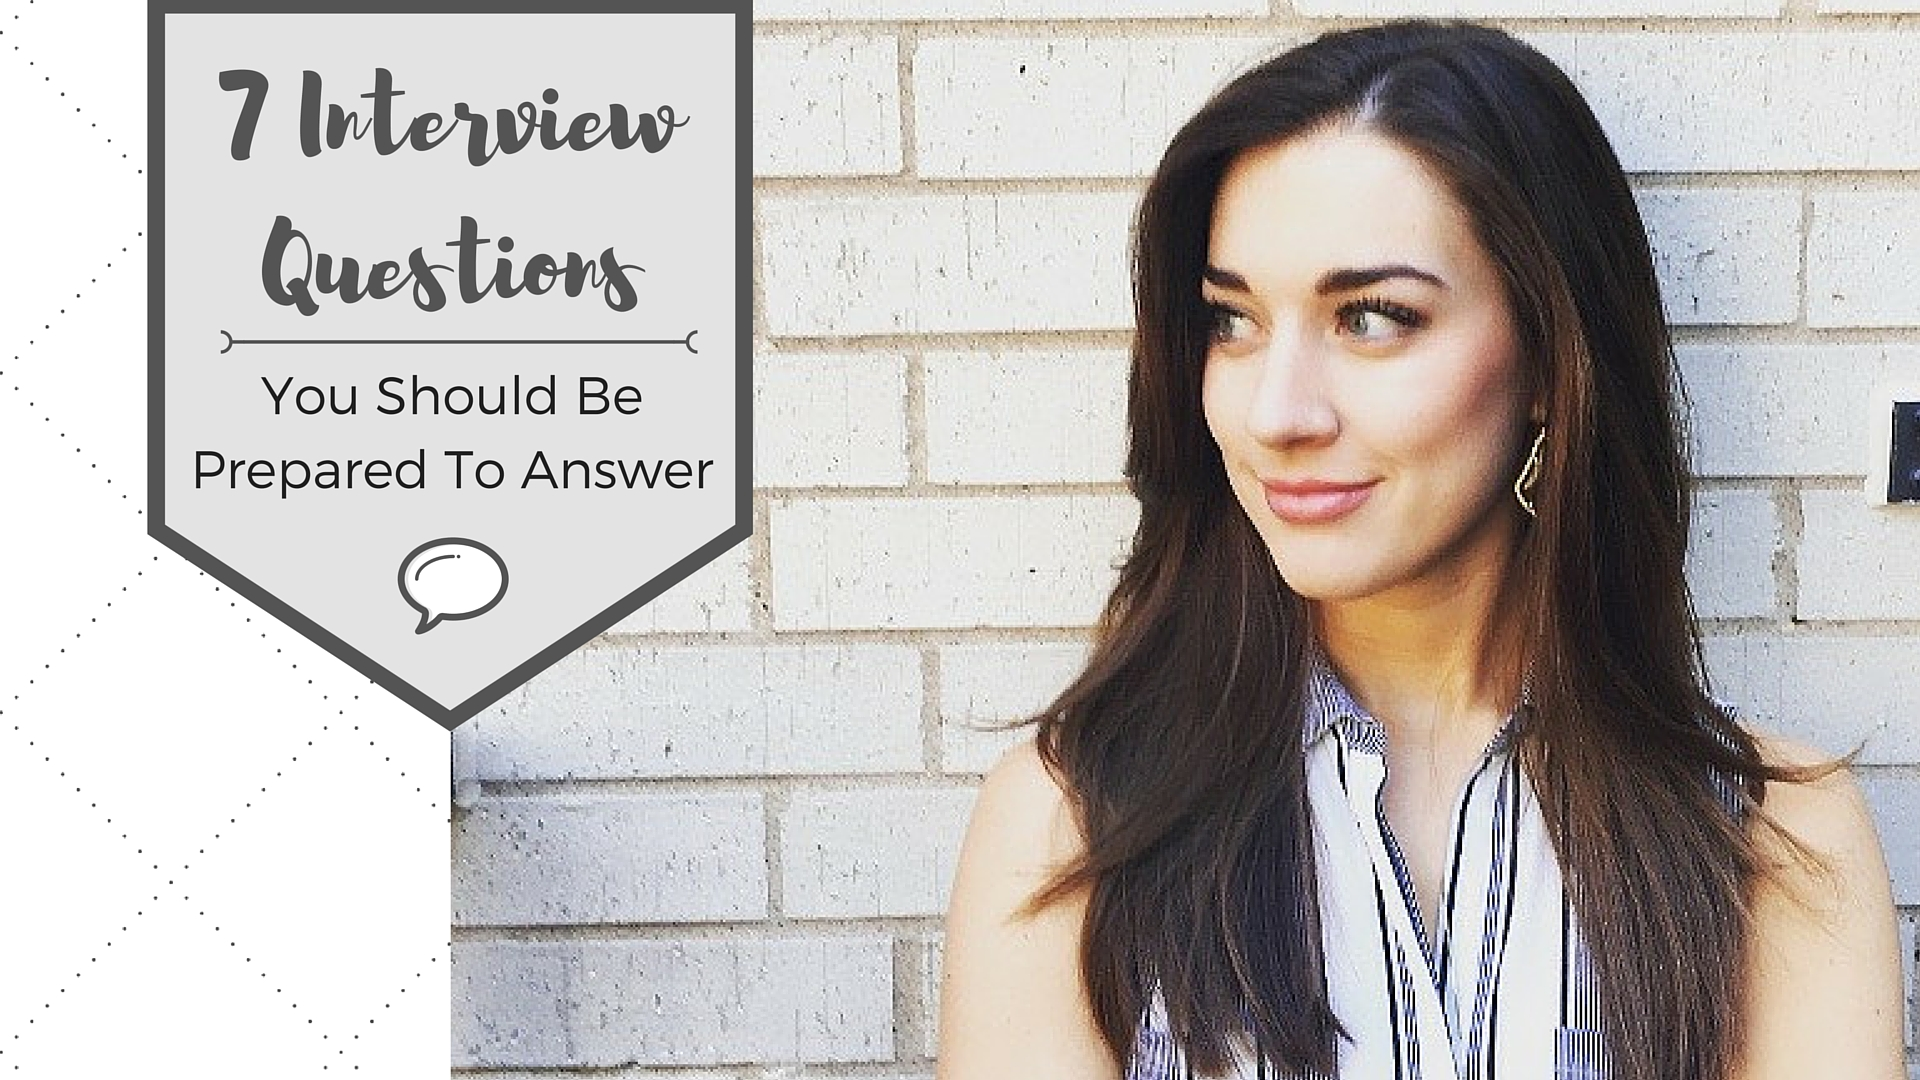 7 Interview Questions (1)